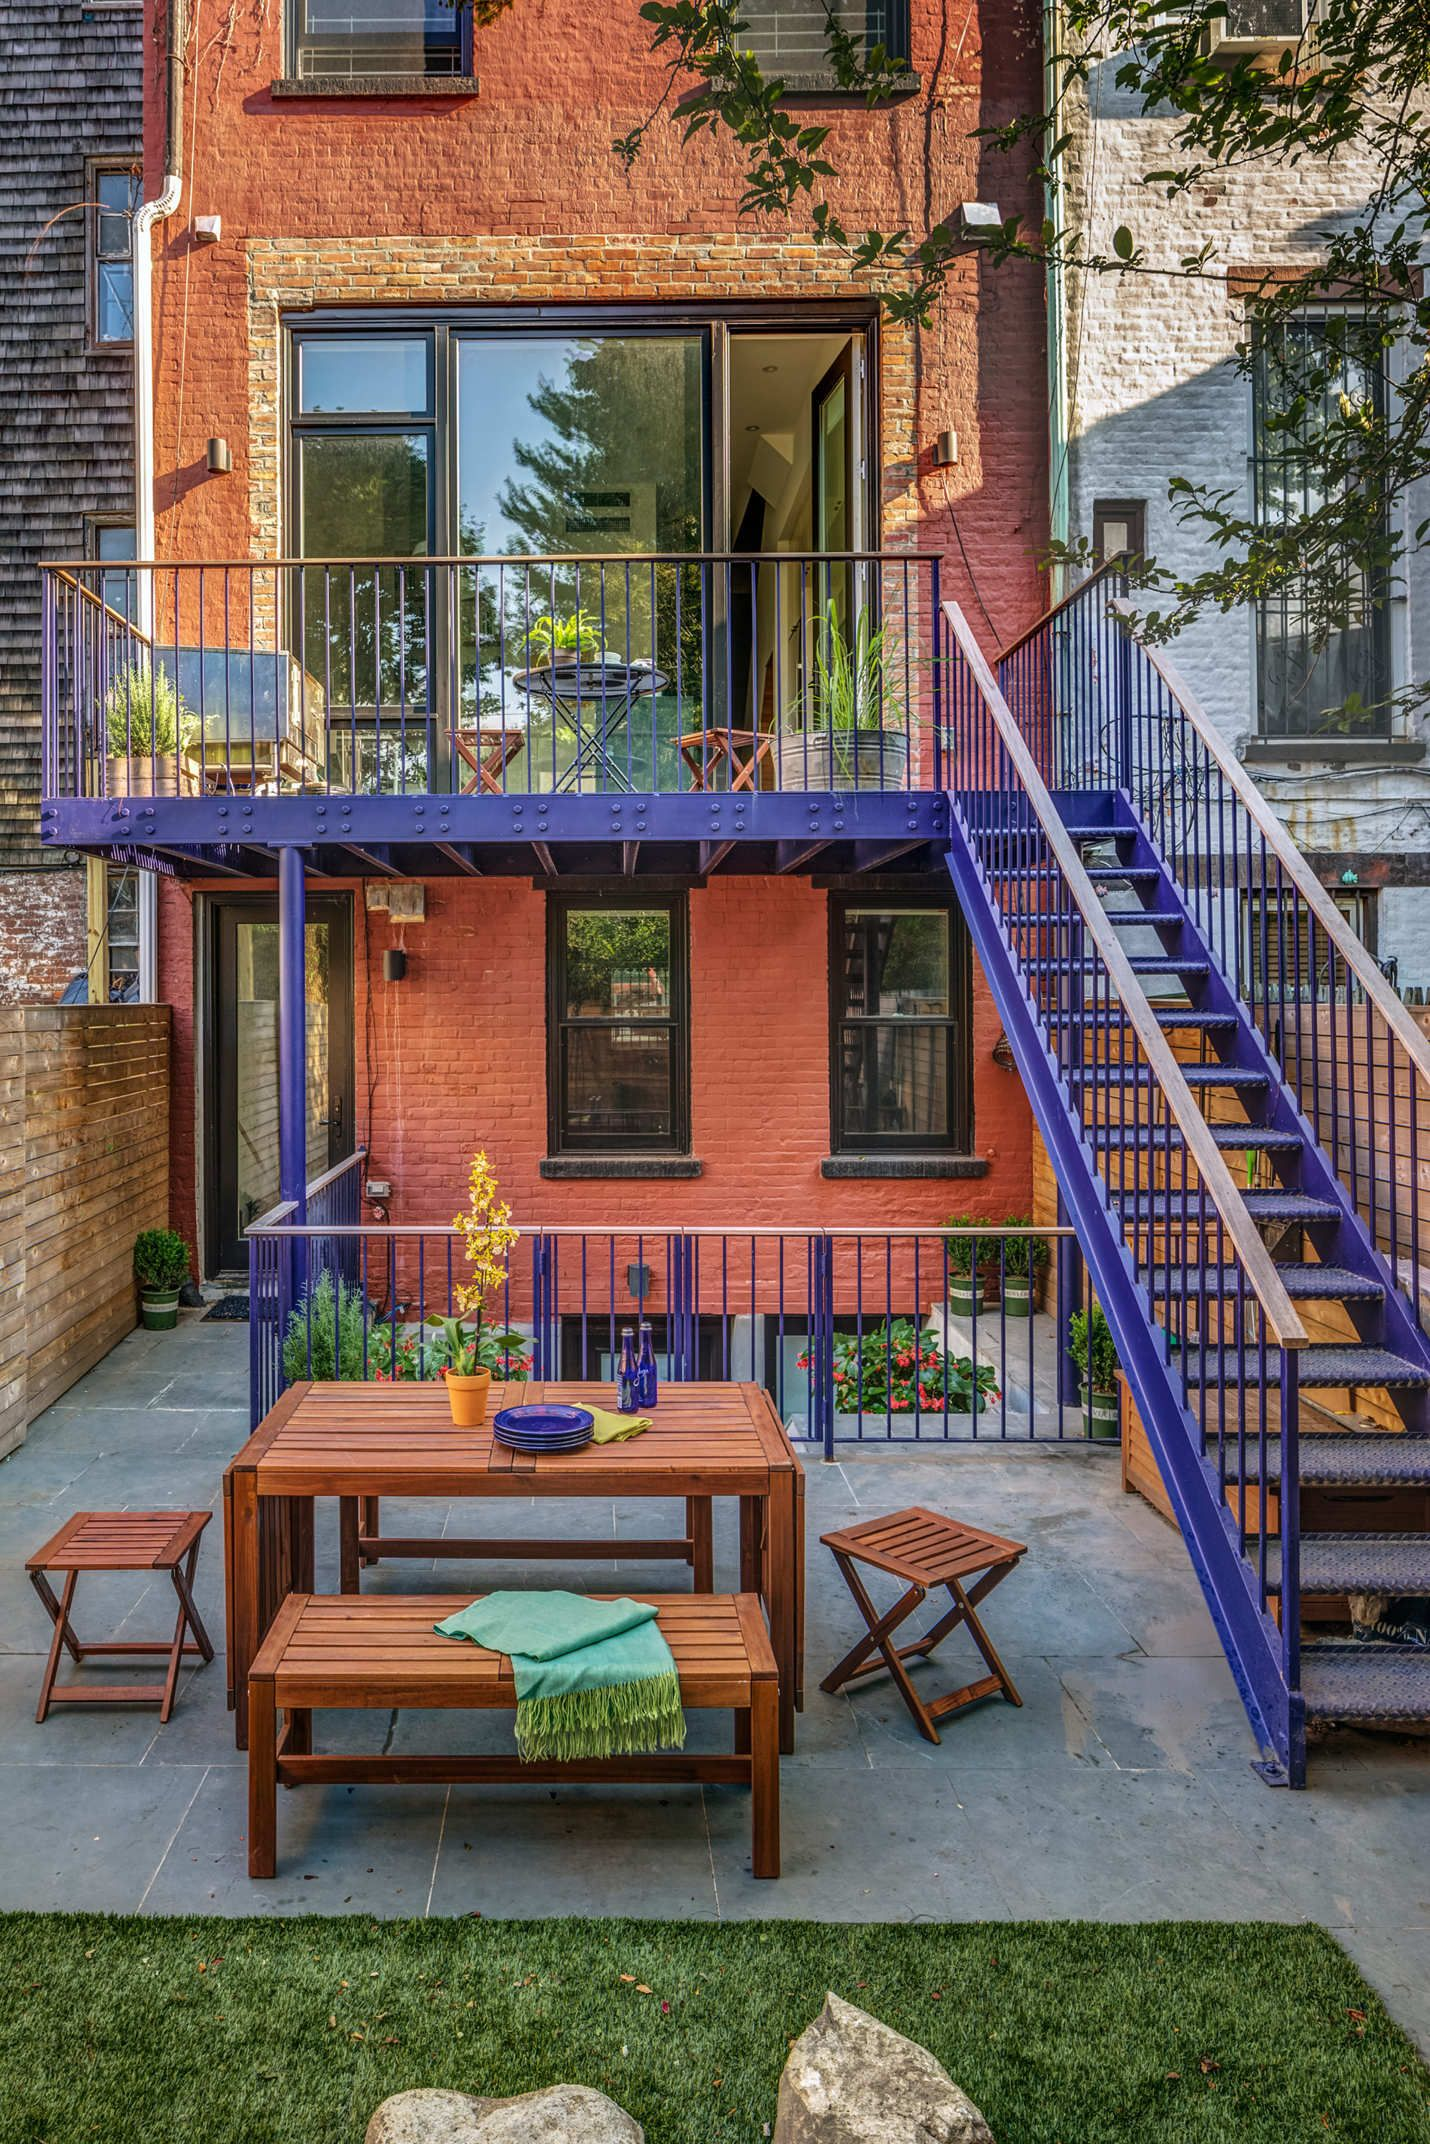 Tour A Brooklyn Brownstone Transformed Into 3 Apartments For Grown Siblings Brooklyn Backyard Brownstone Townhouse Interior